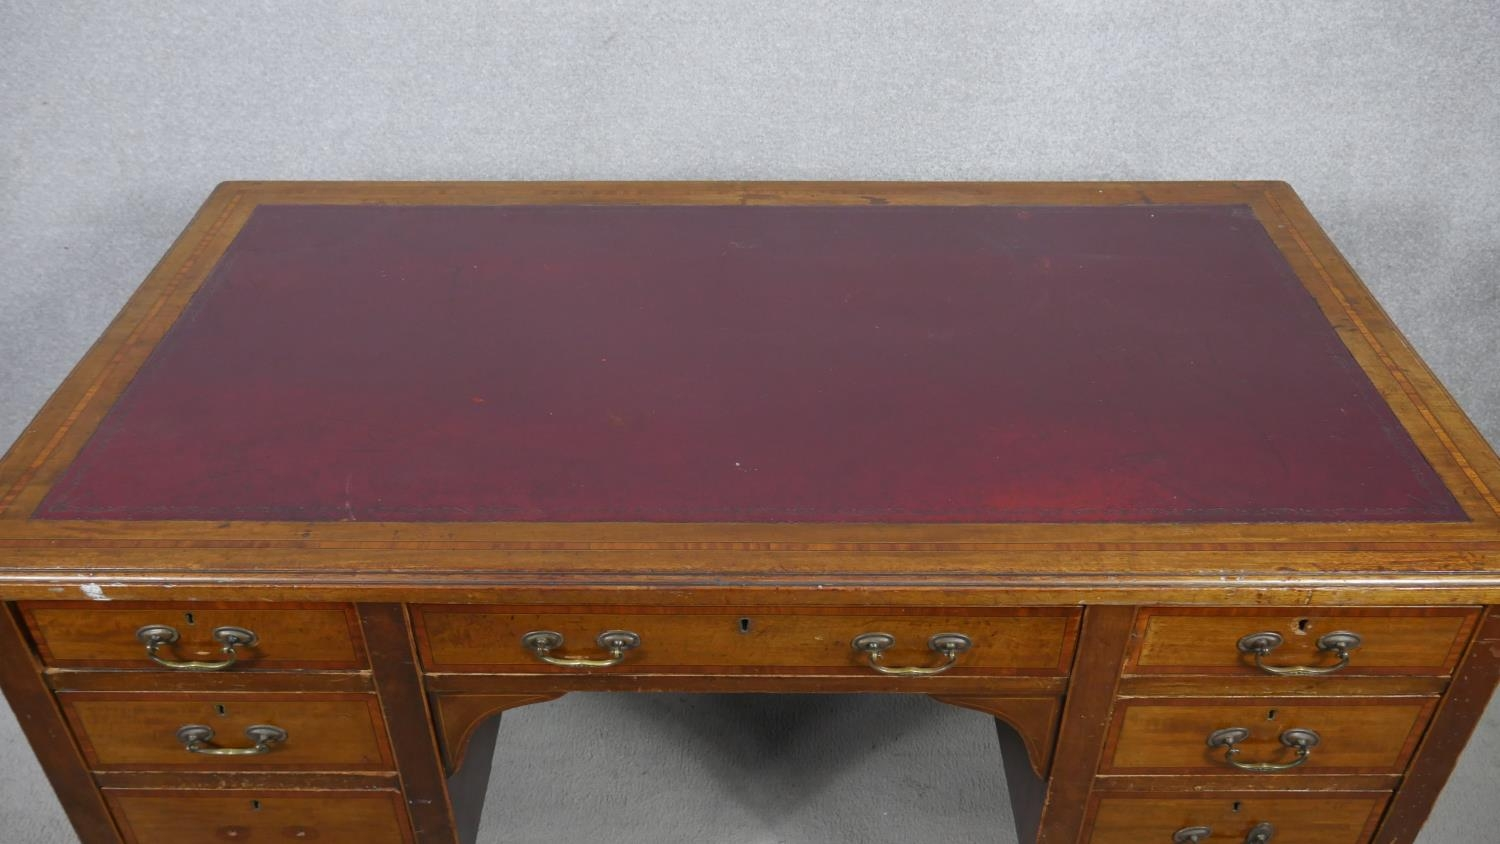 An Edwardian mahogany and crossbanded kneehole desk with inset leather top raised on square tapering - Image 6 of 9